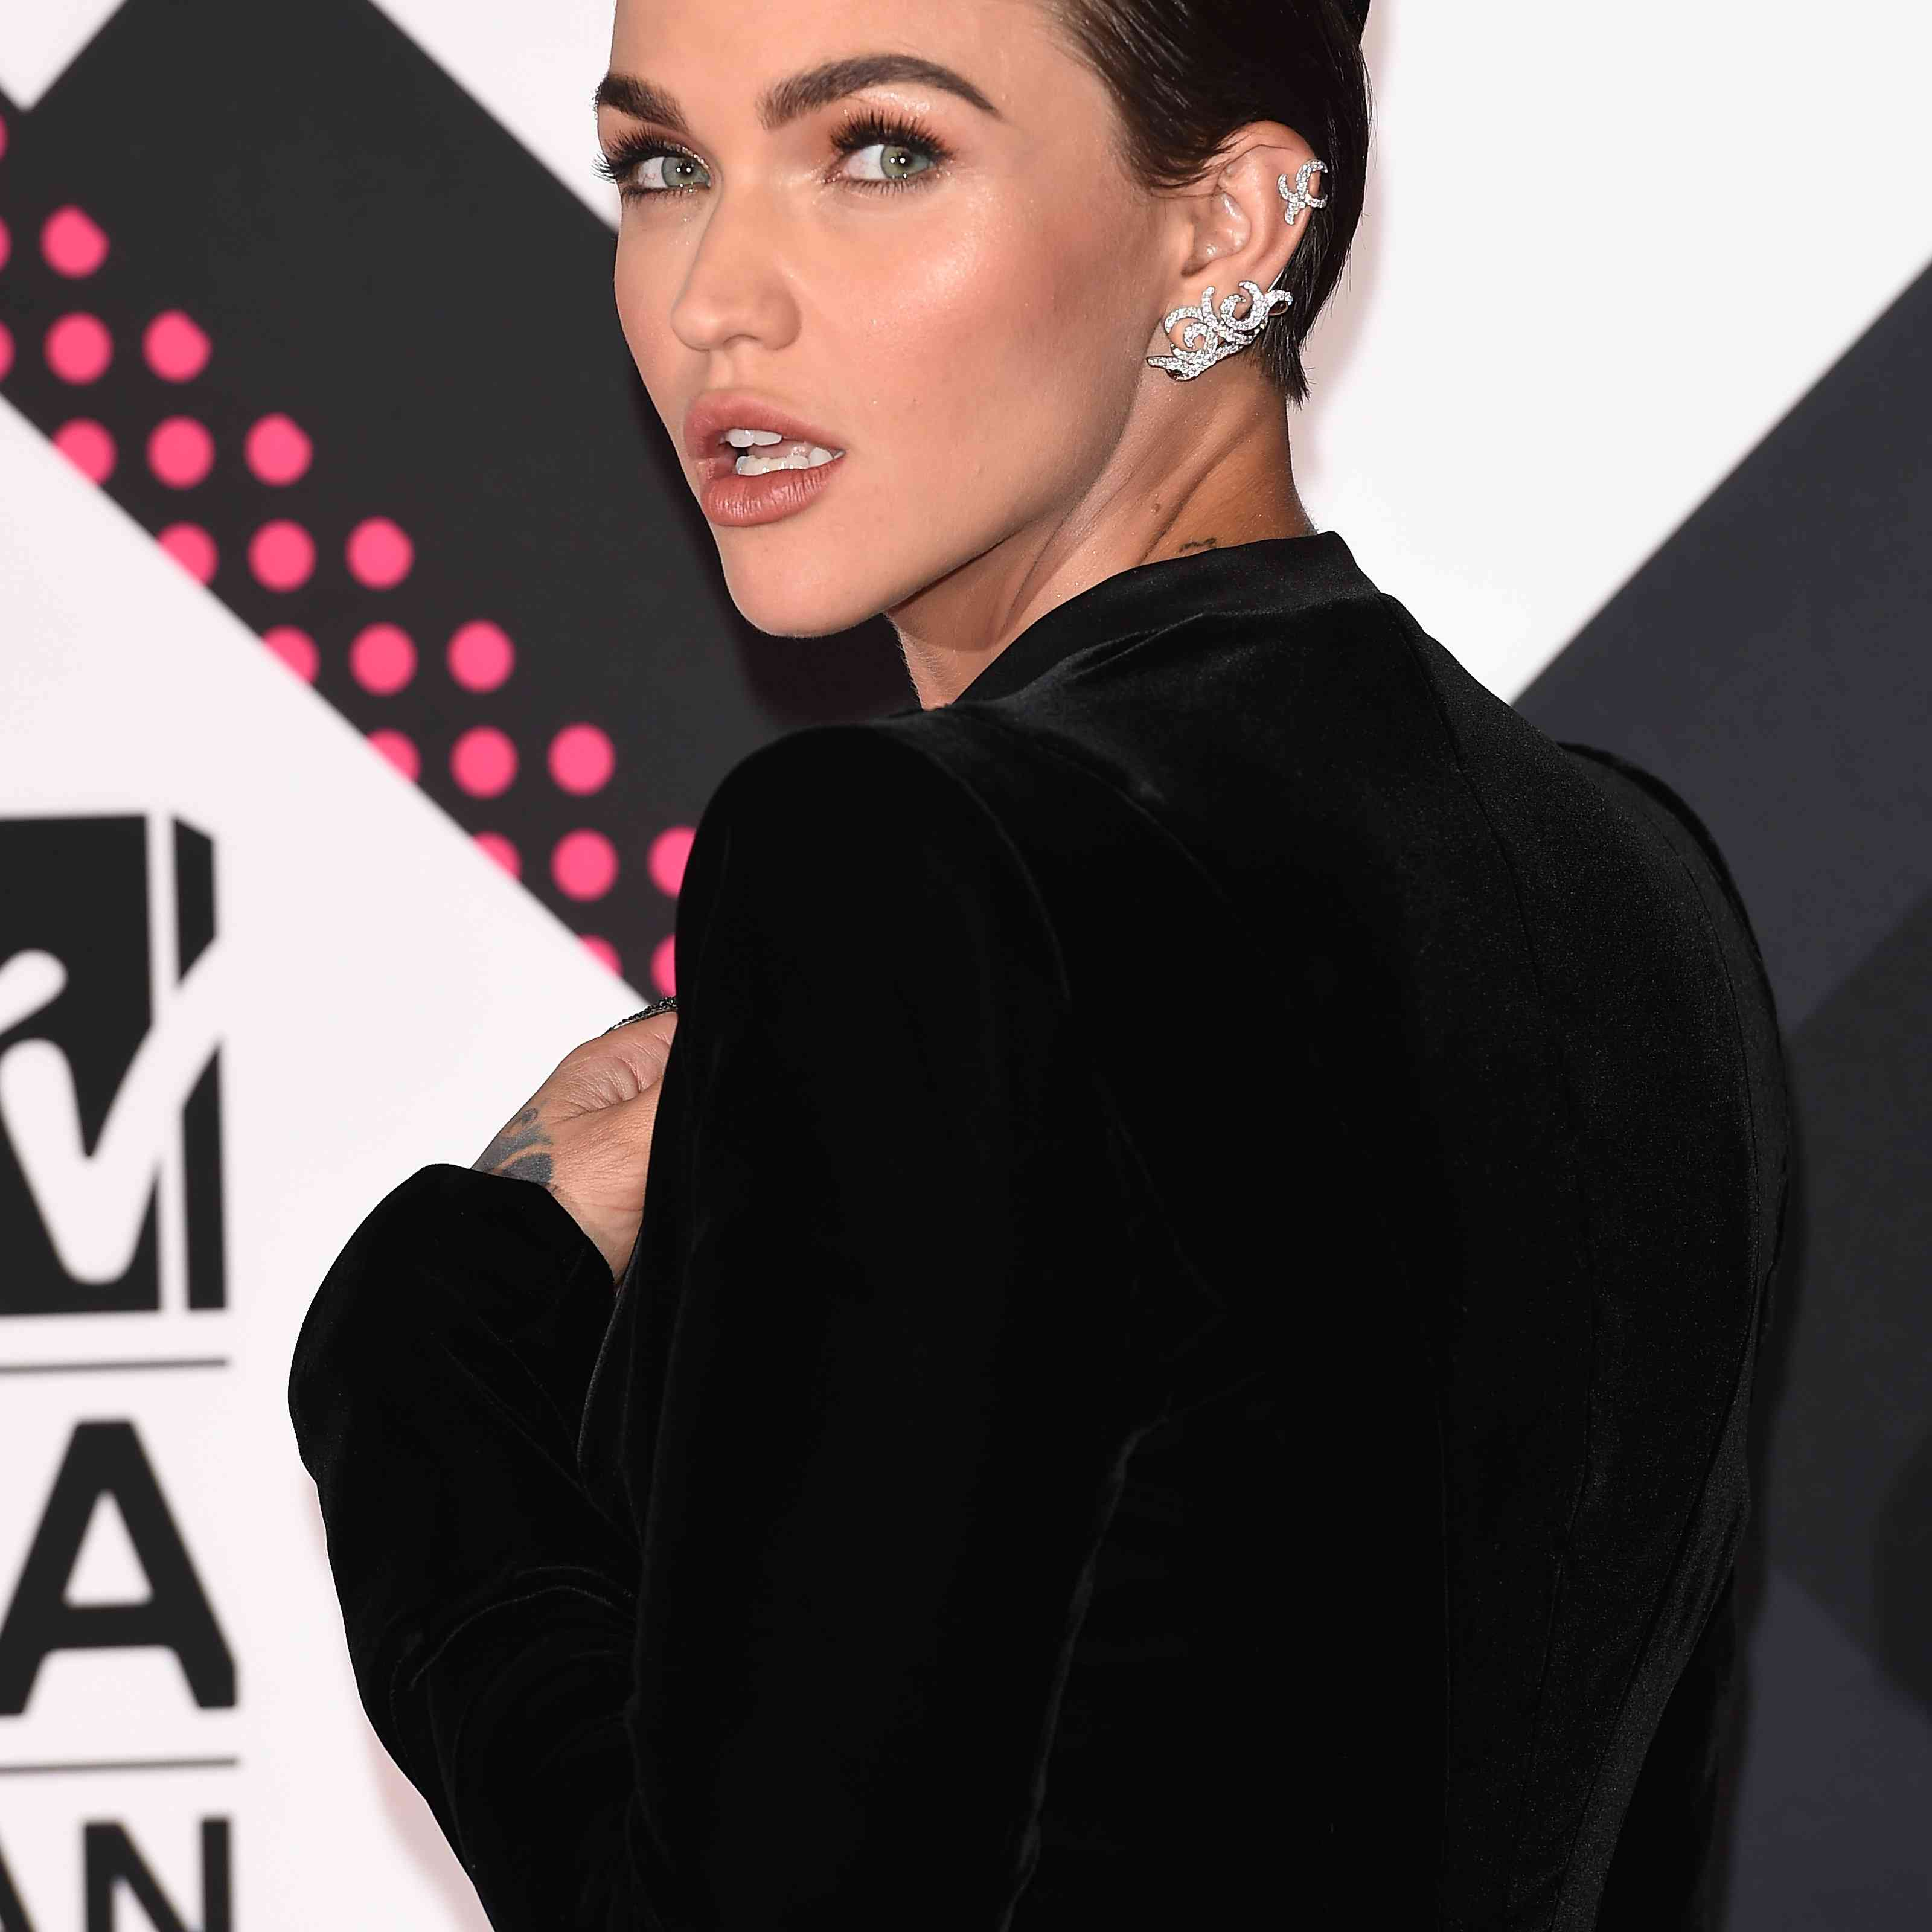 Ruby Rose's Double Braid